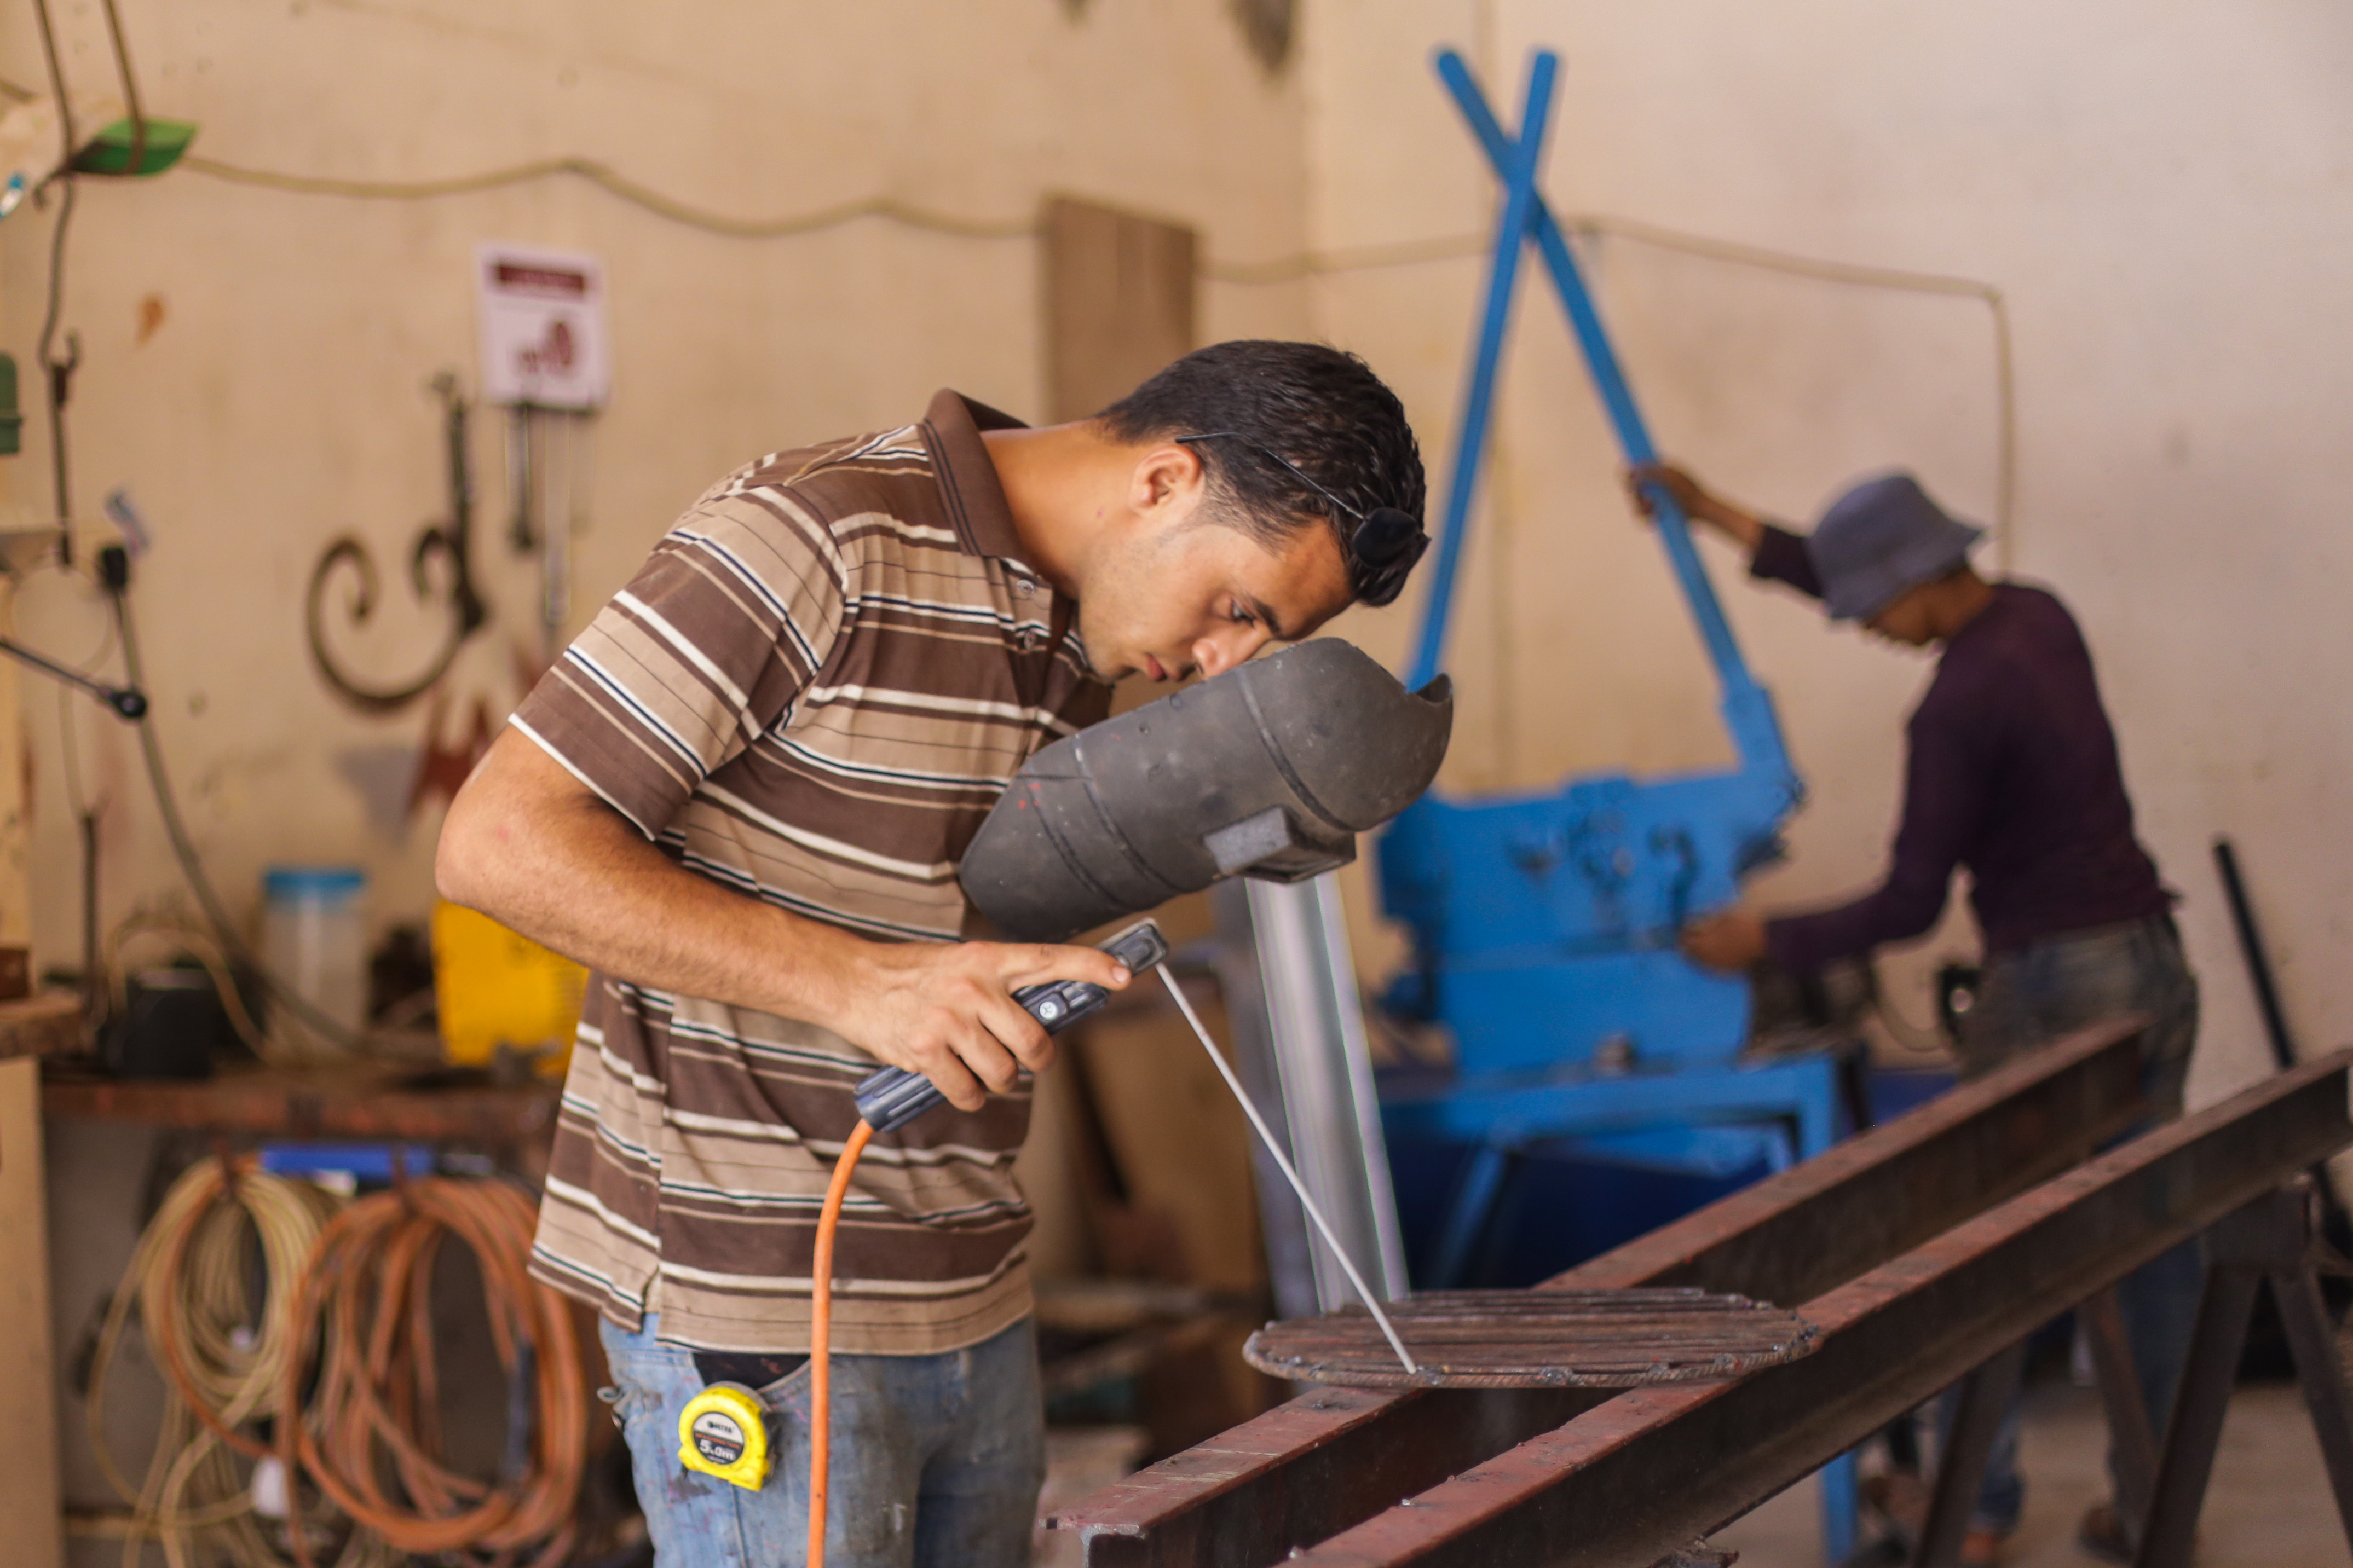 Hamdi works in his metal shop in Gaza.